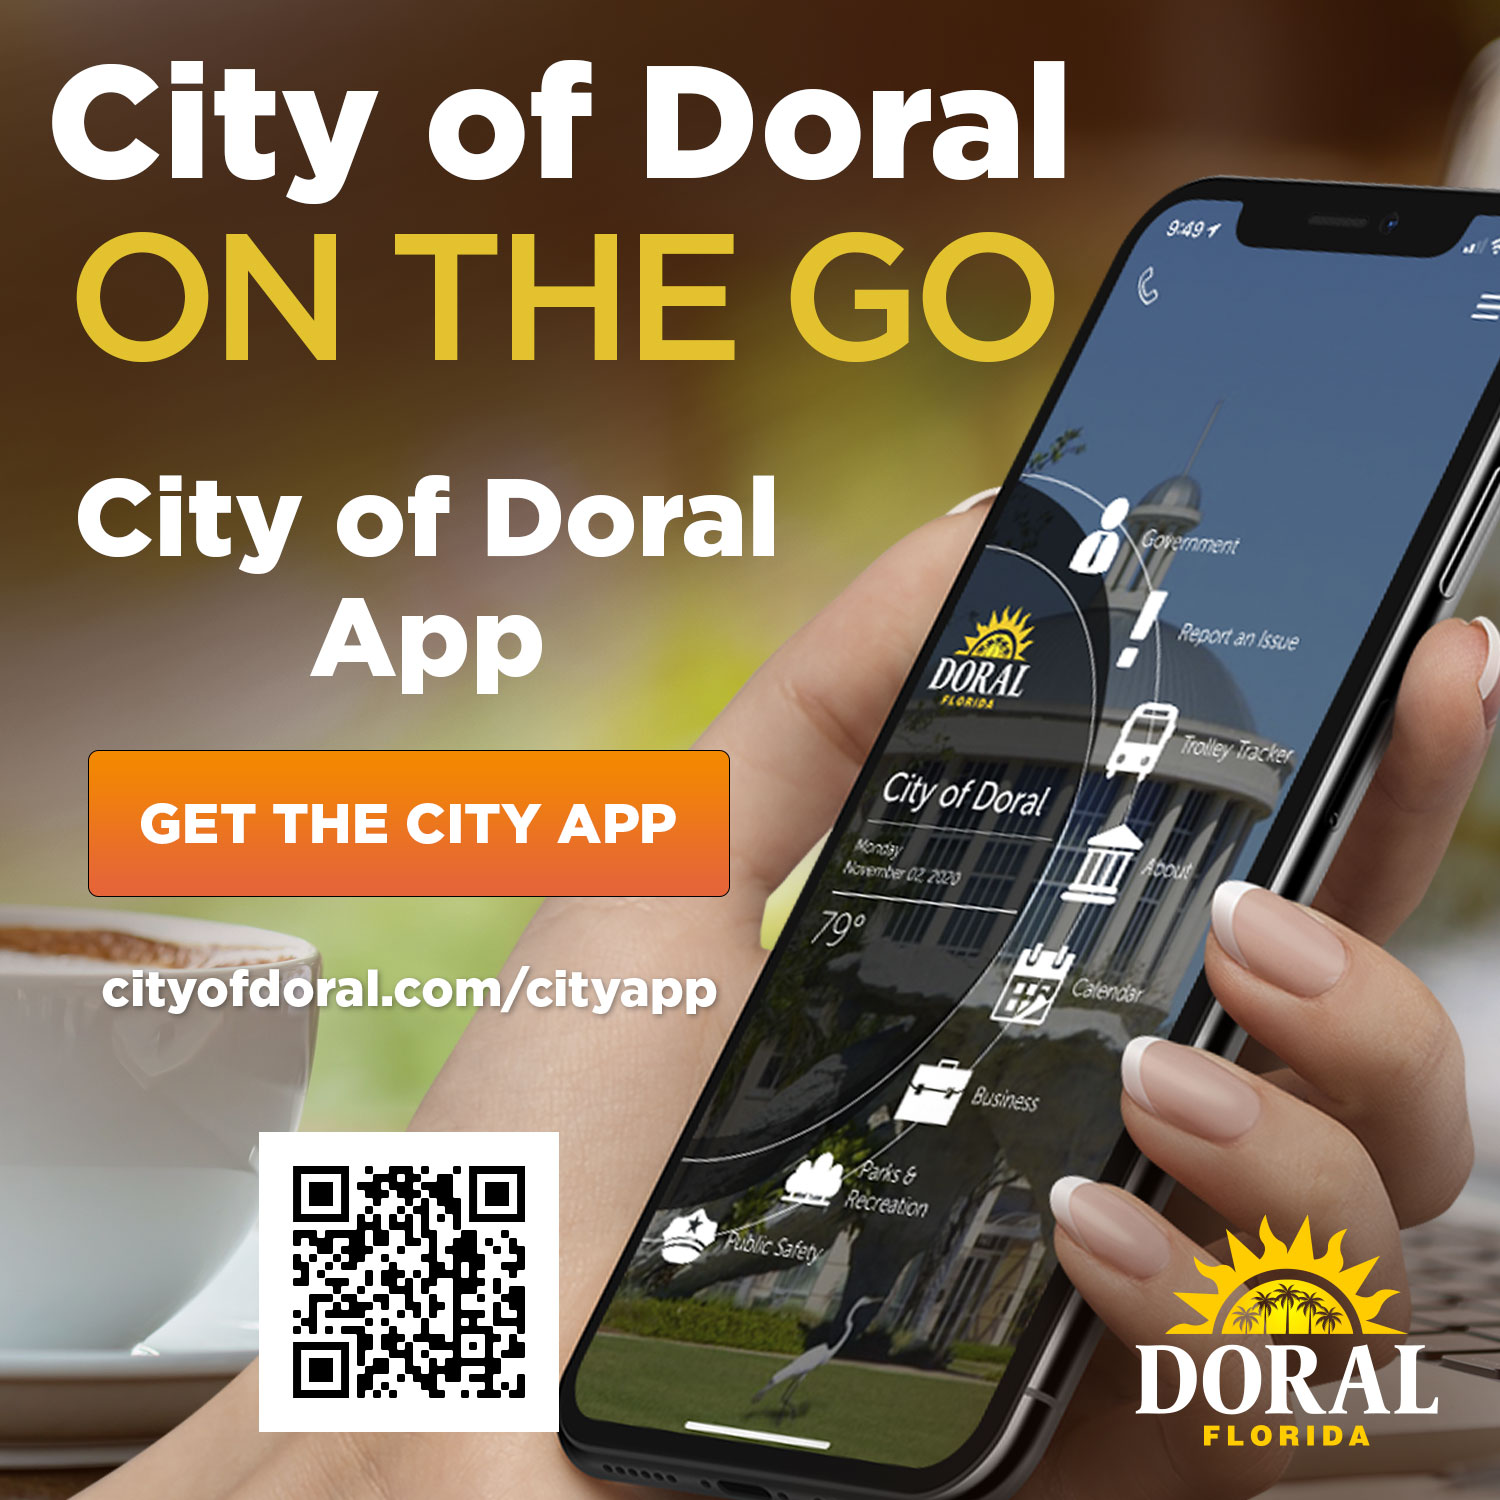 Download the City of Doral Official App!